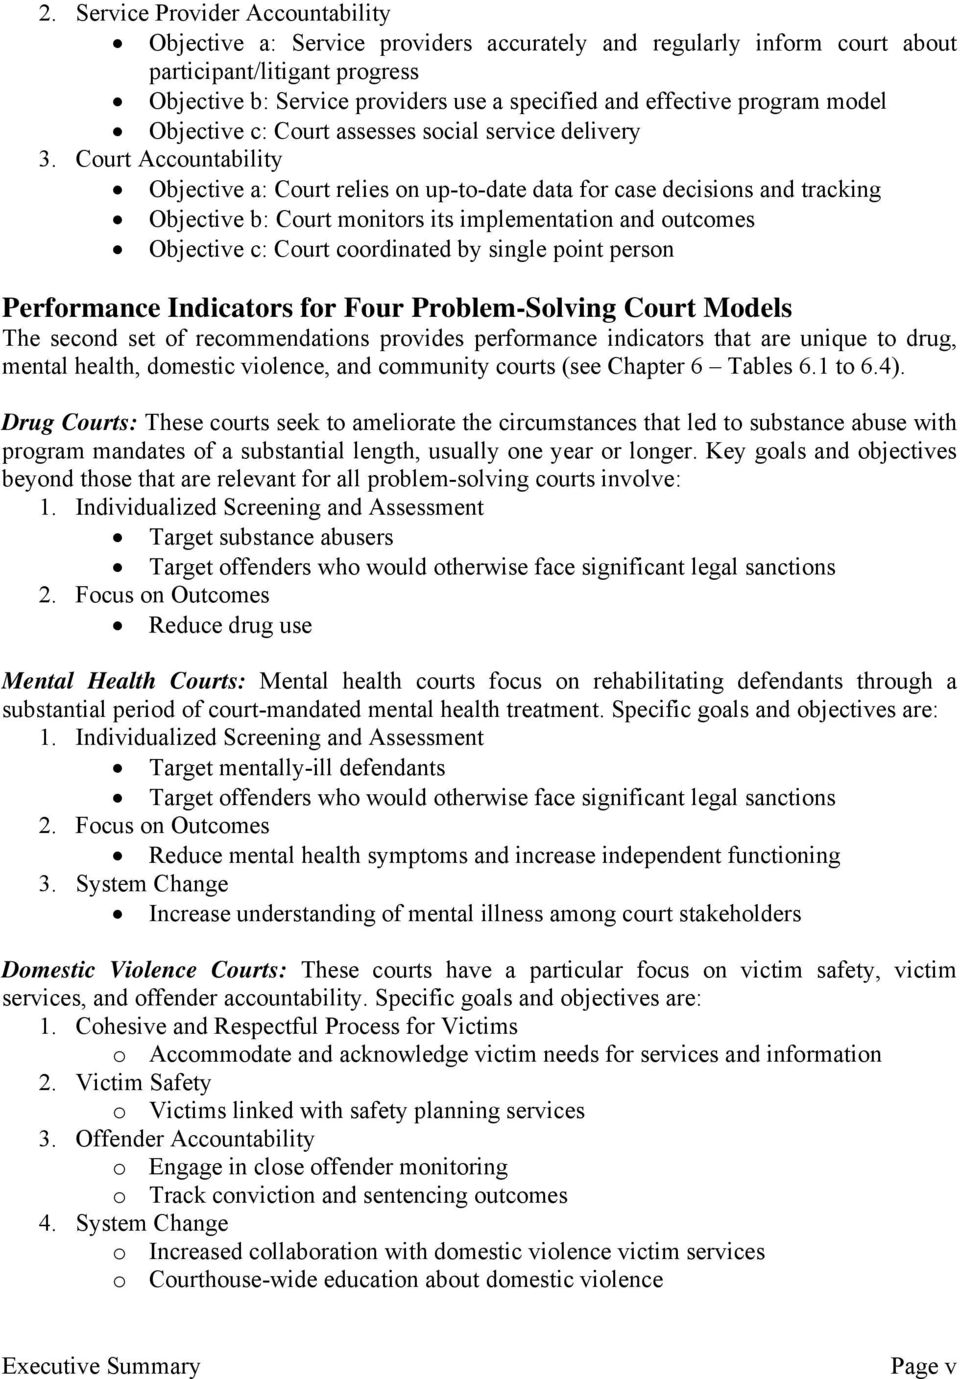 Court Accountability Objective a: Court relies on up-to-date data for case decisions and tracking Objective b: Court monitors its implementation and outcomes Objective c: Court coordinated by single